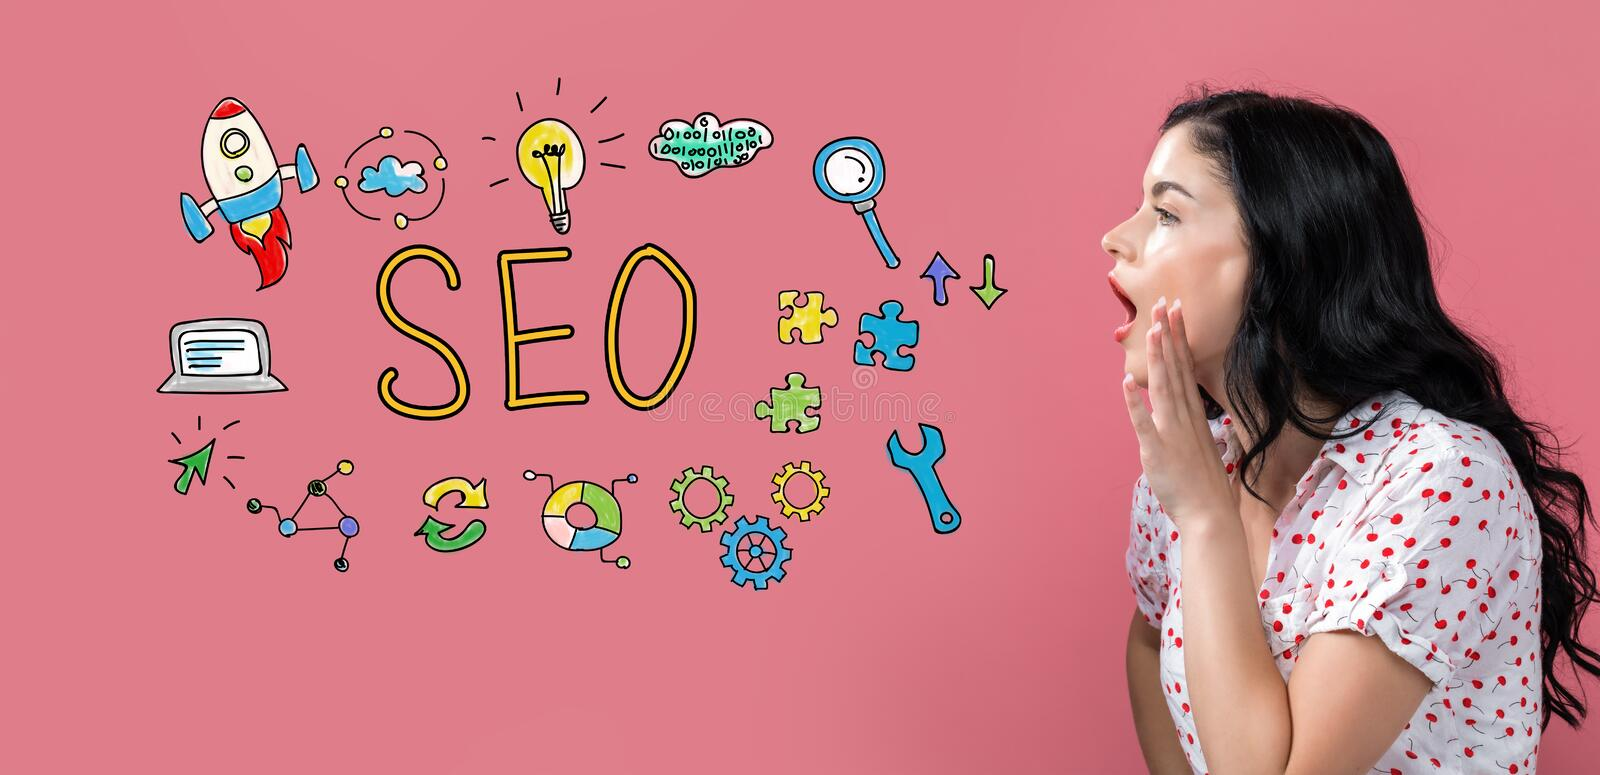 SEO with young woman speaking stock photos